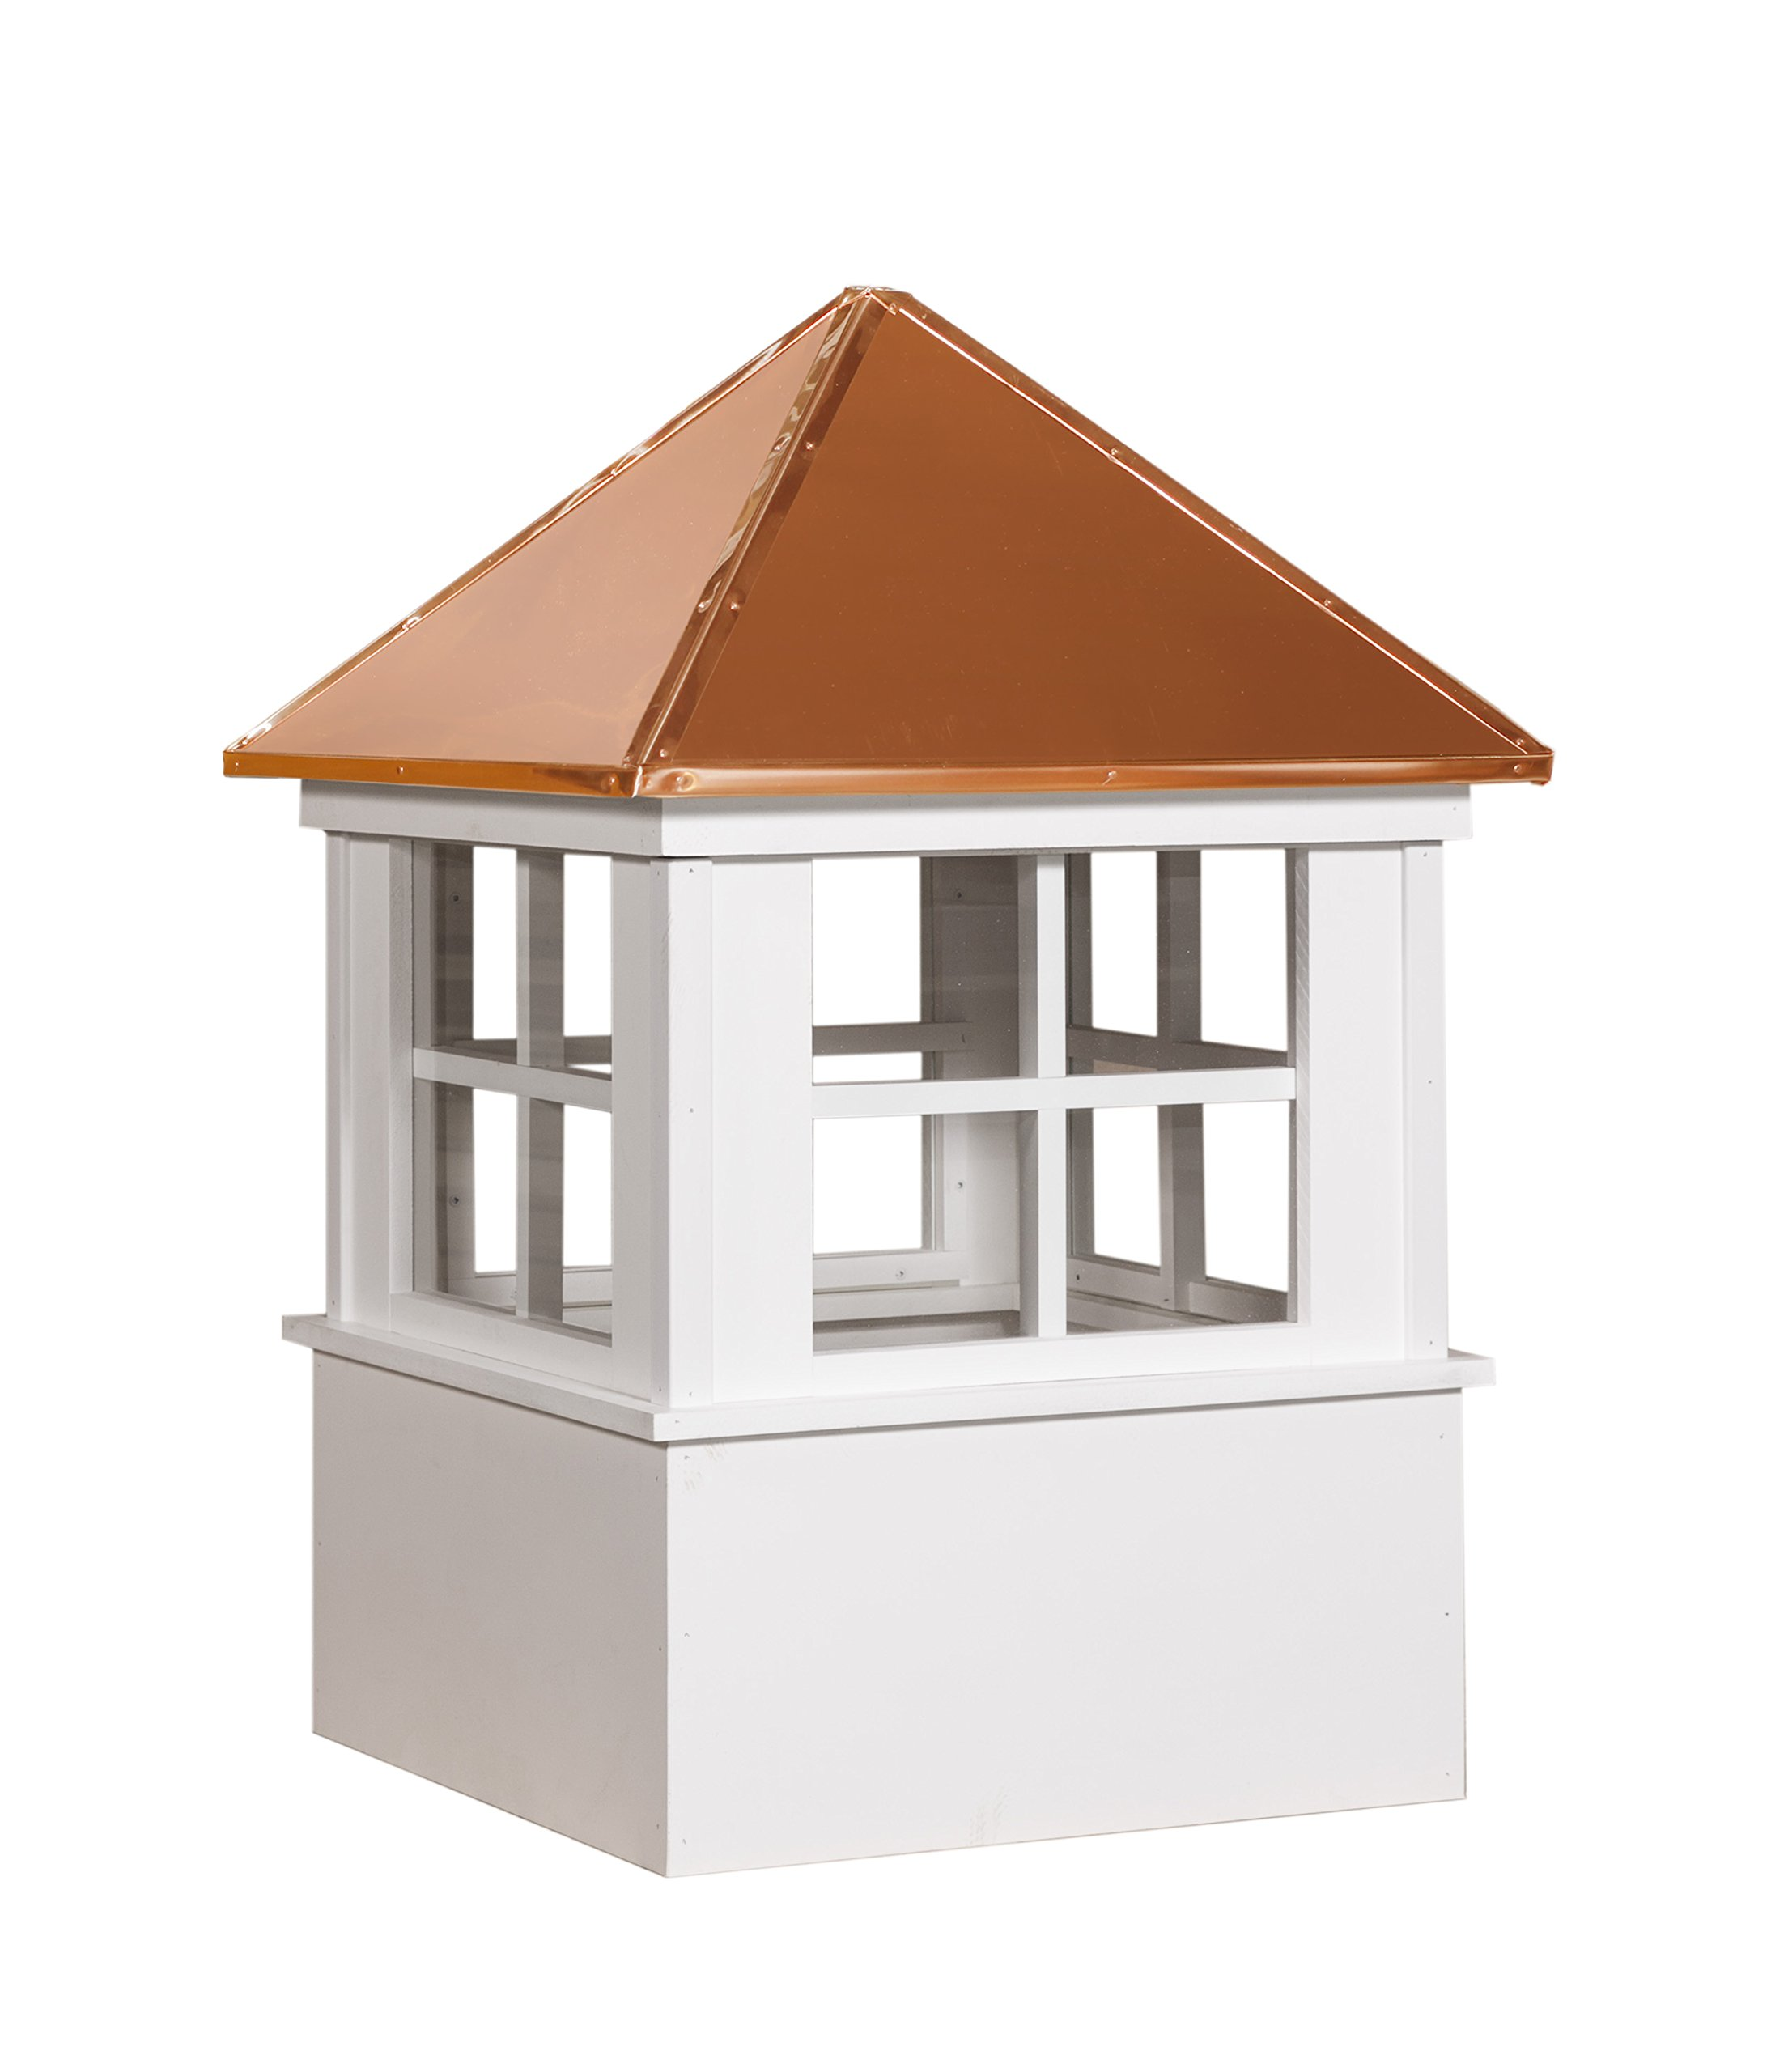 East Coast Weathervanes and Cupolas Vinyl Chester Cupola (Vinyl, 21 in square 34 in Tall)